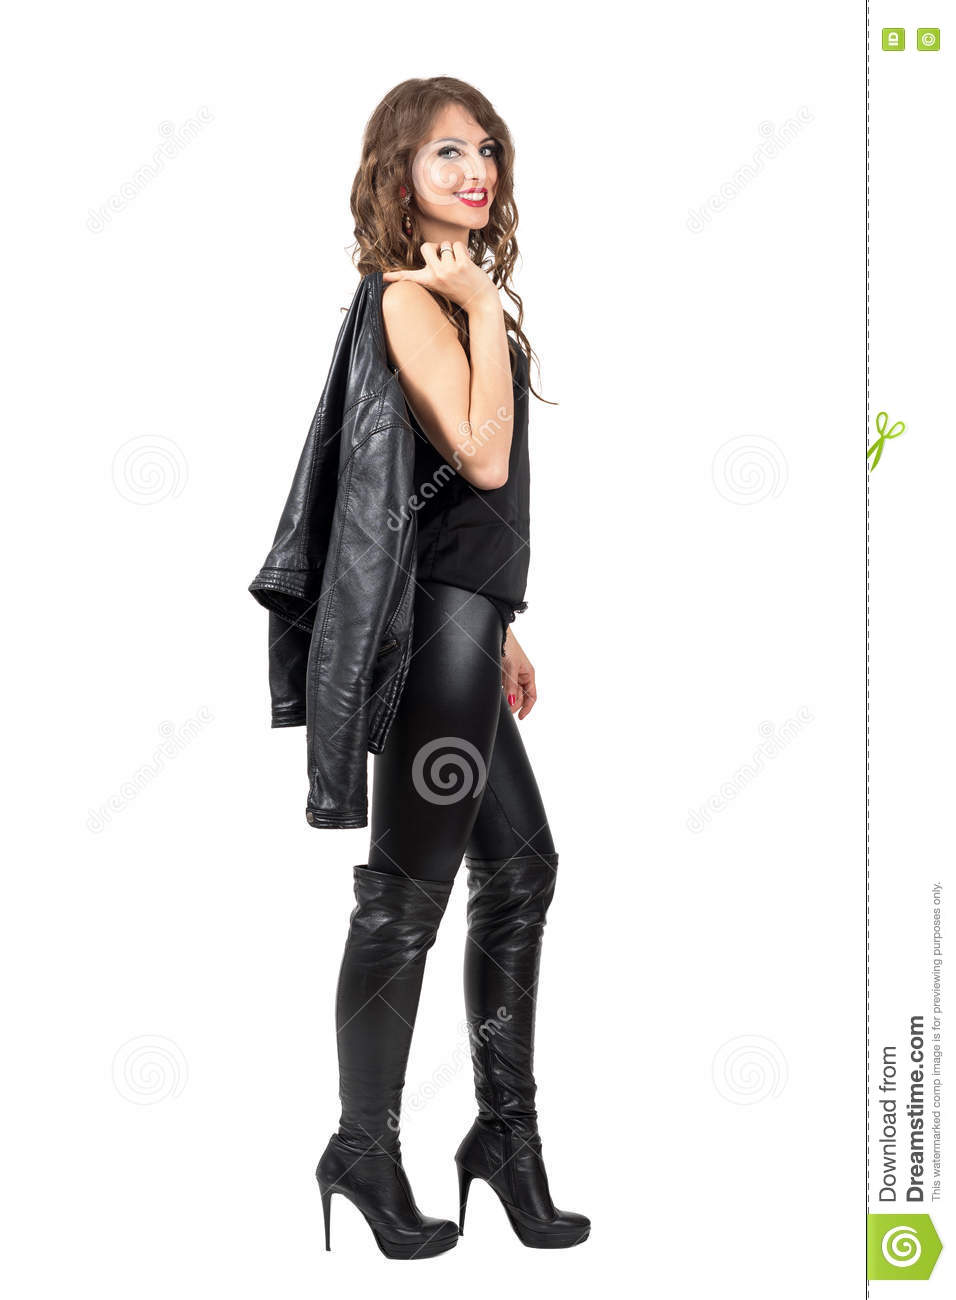 Stylish Beautiful Woman In Leather Boots And Pants Carrying